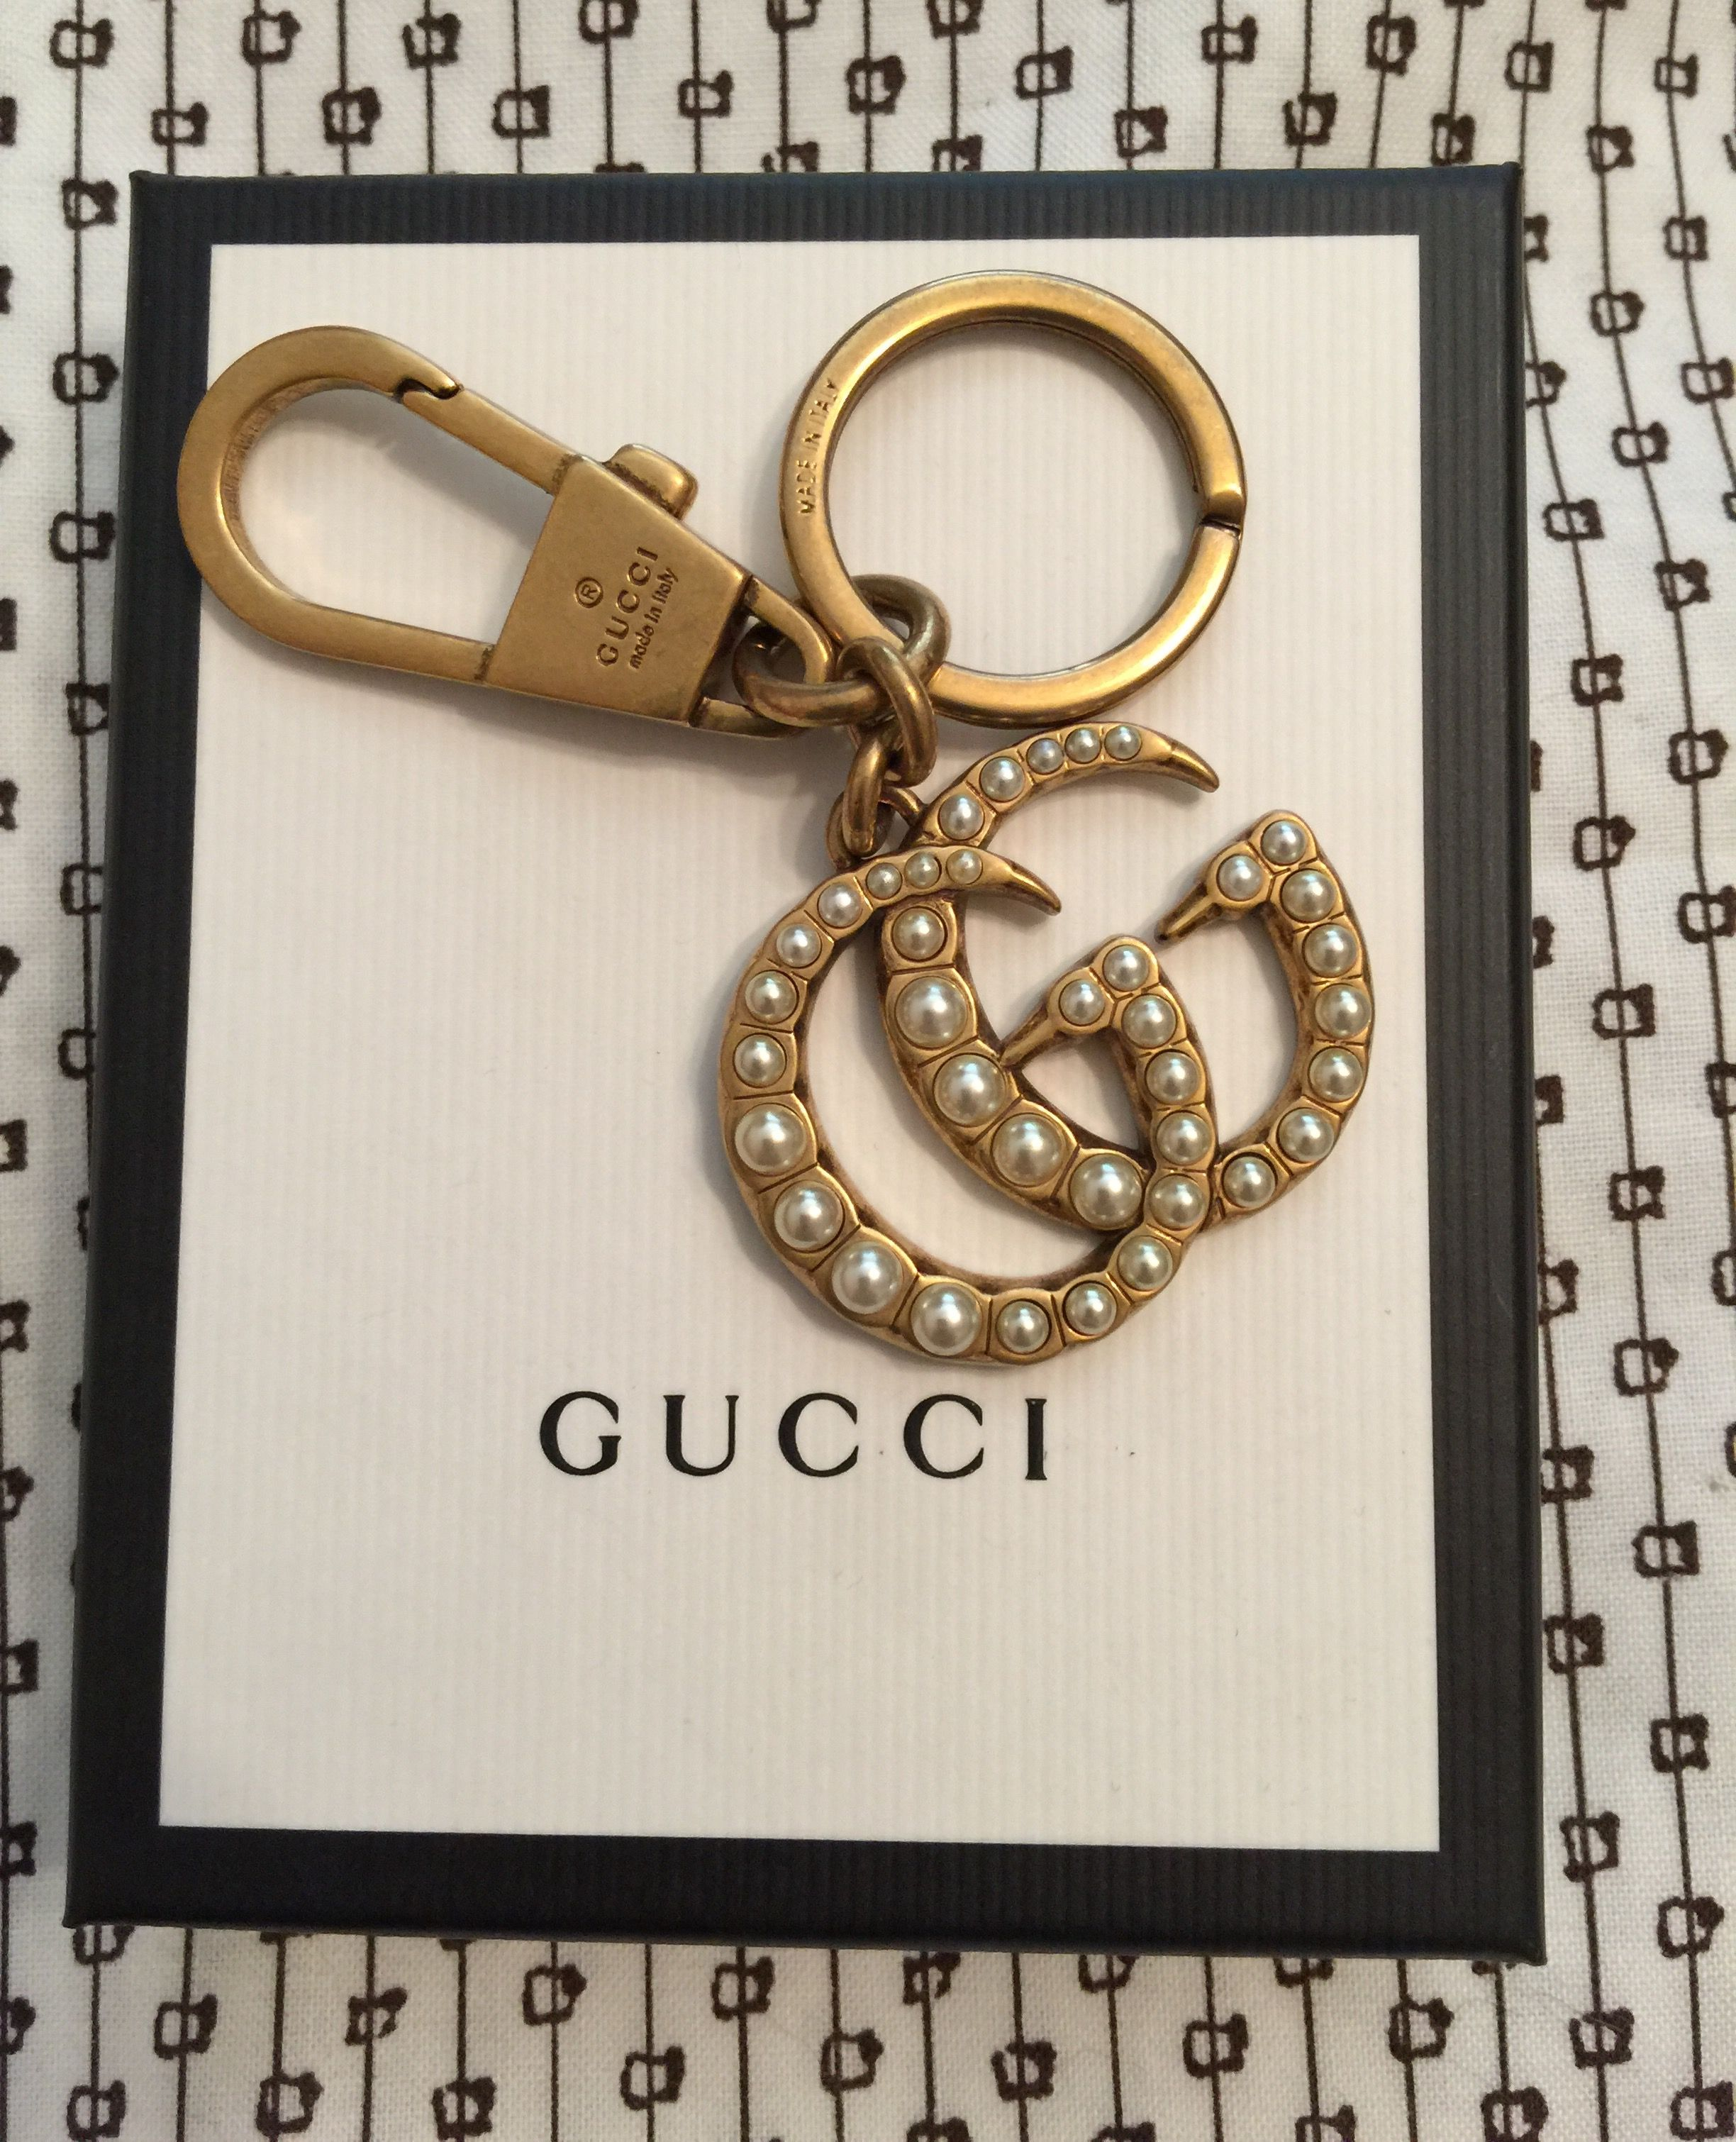 Gucci 2017 double g keychain with pearls in antique gold